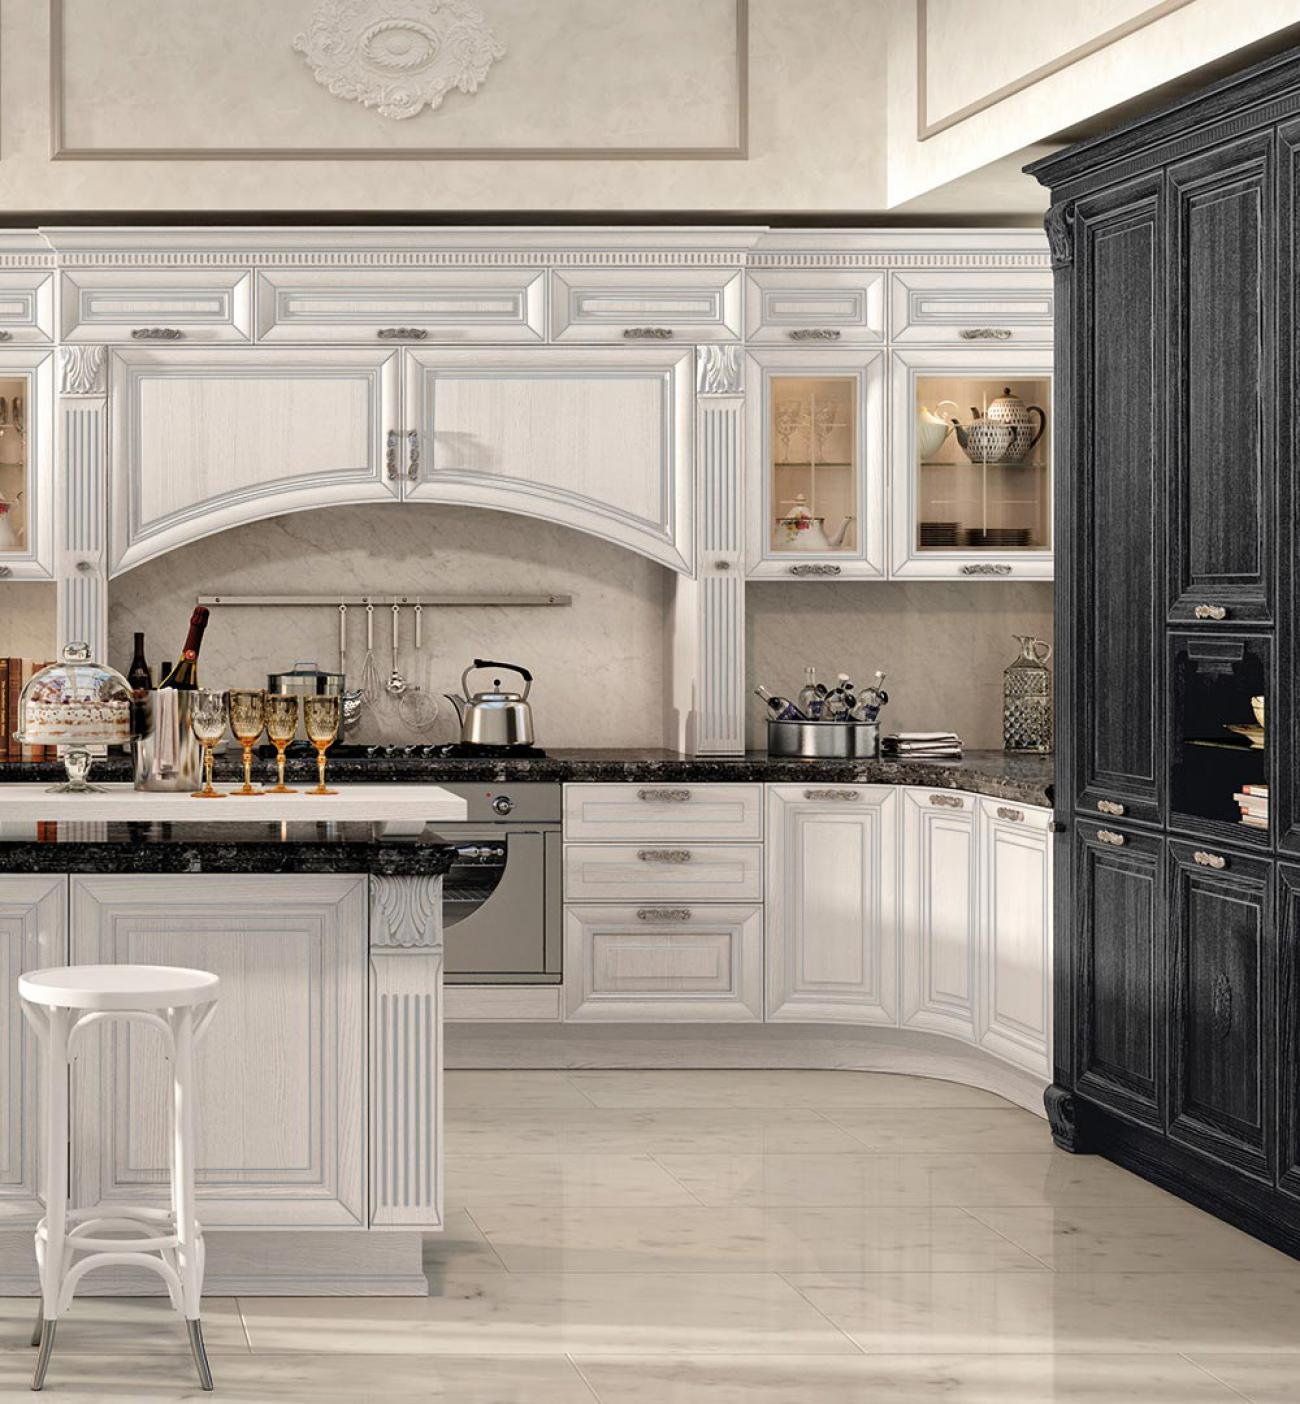 Classic Kitchens - Pantheon - 02